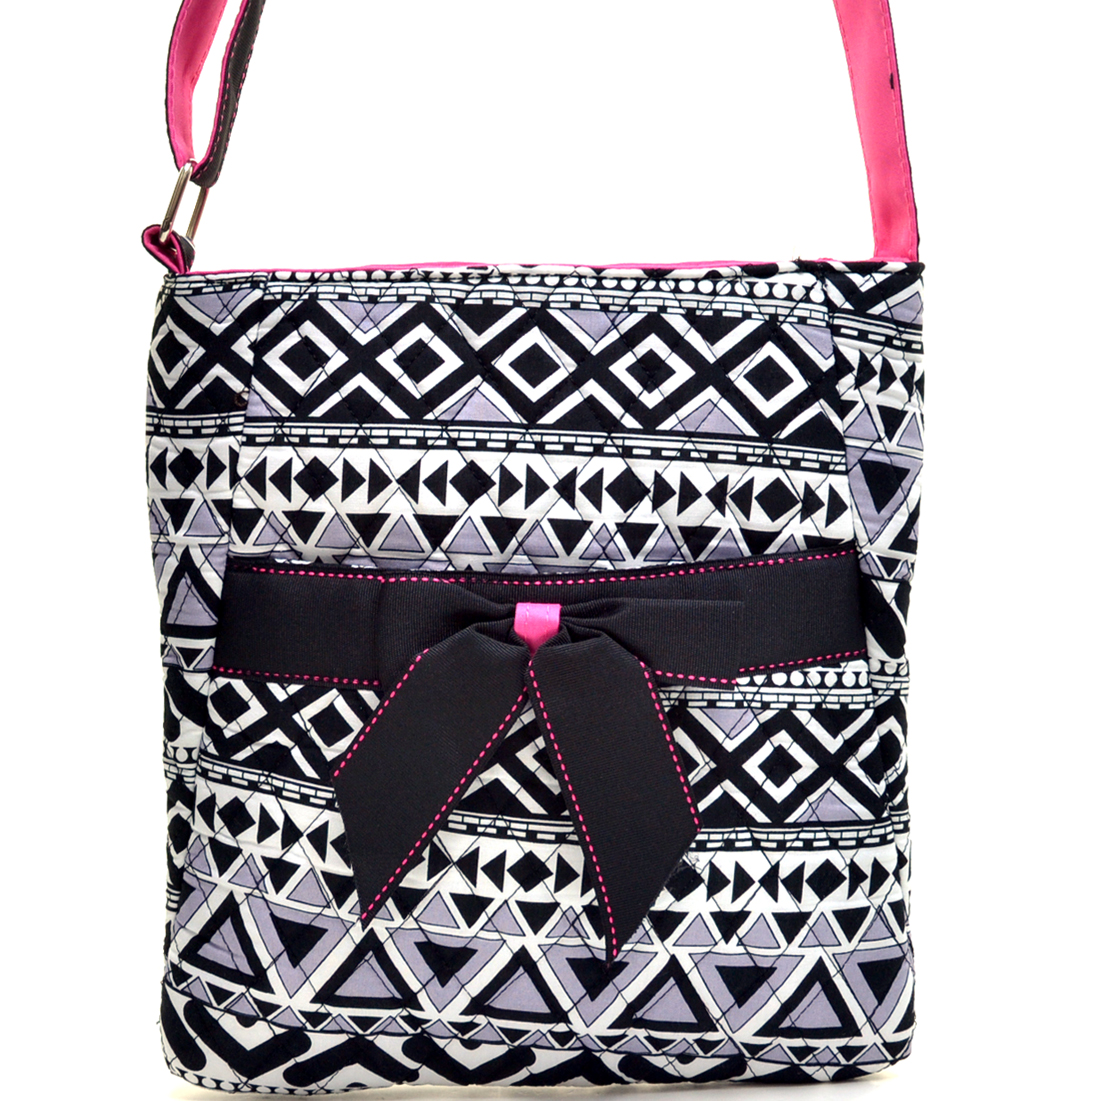 Aztec Print Quilted Messenger Bag/Crossbody Bag w/ Removable Bow